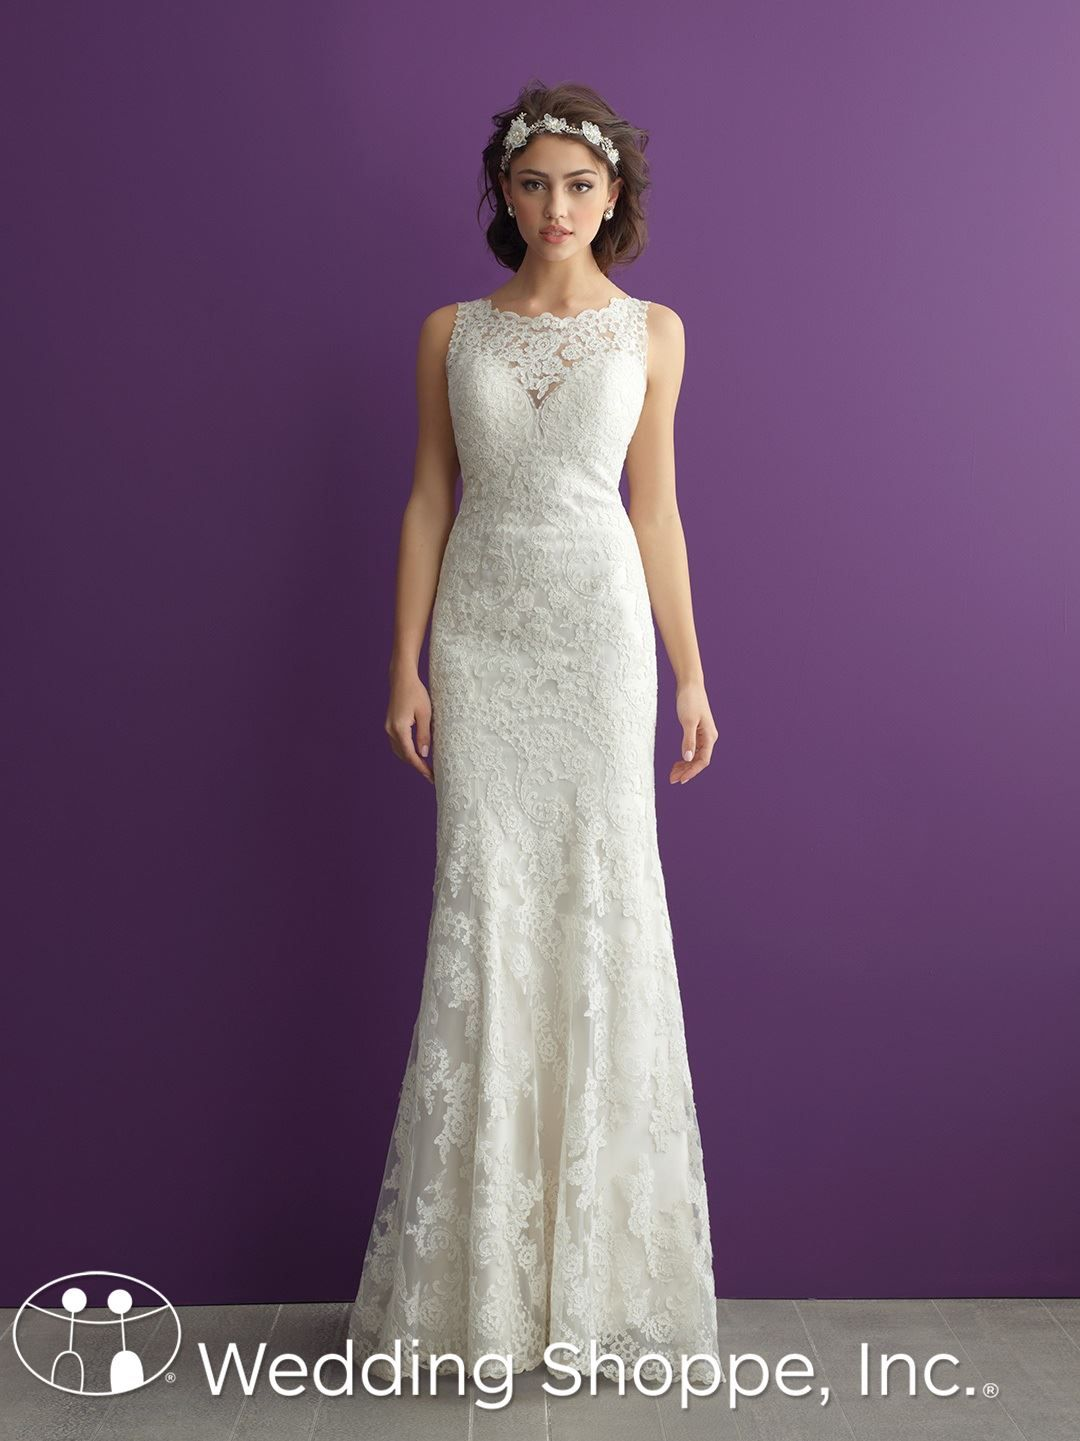 Allure Romance Bridal Gown 2960   happily ever after   Pinterest ...